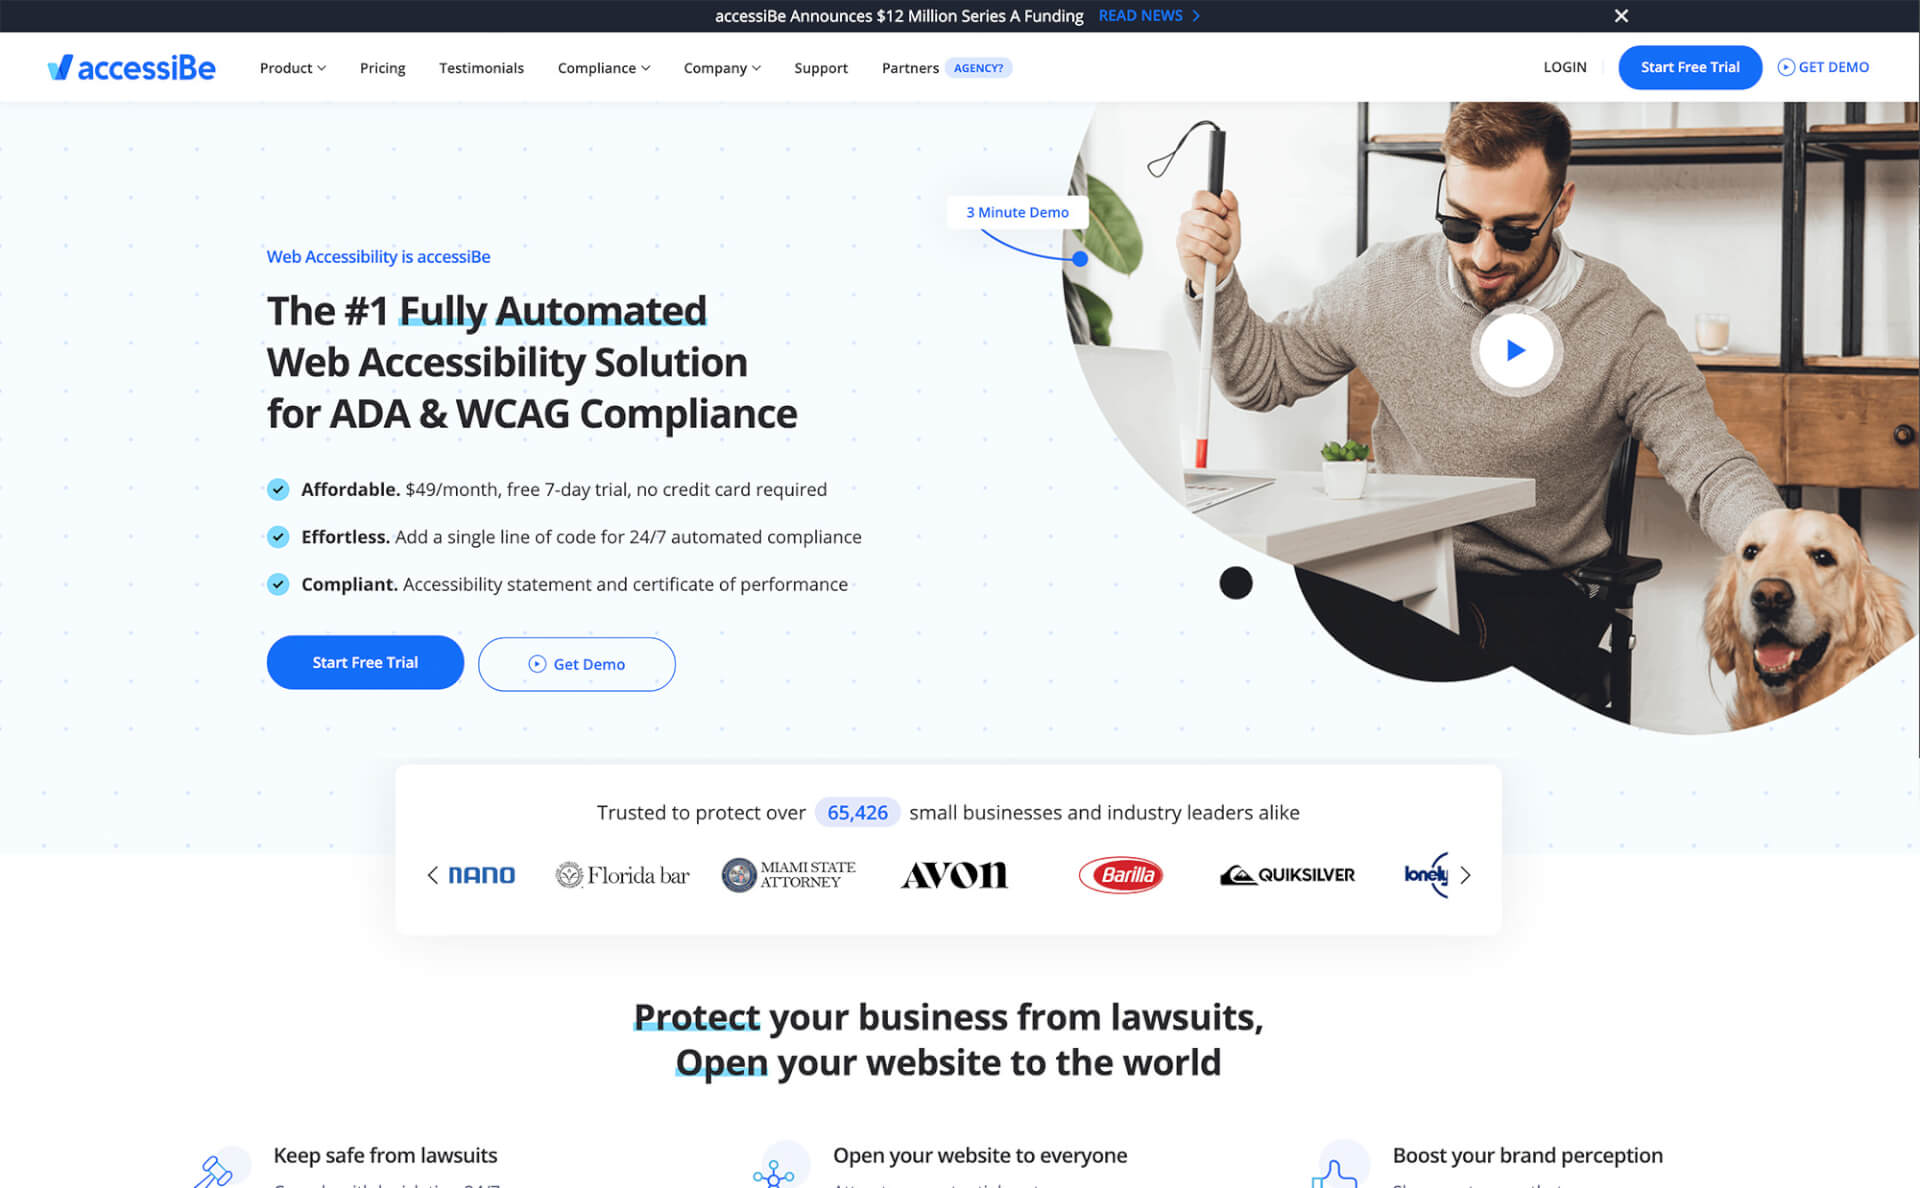 Resource - ADA Compliance for Insurance Agency Websites - accessiBe